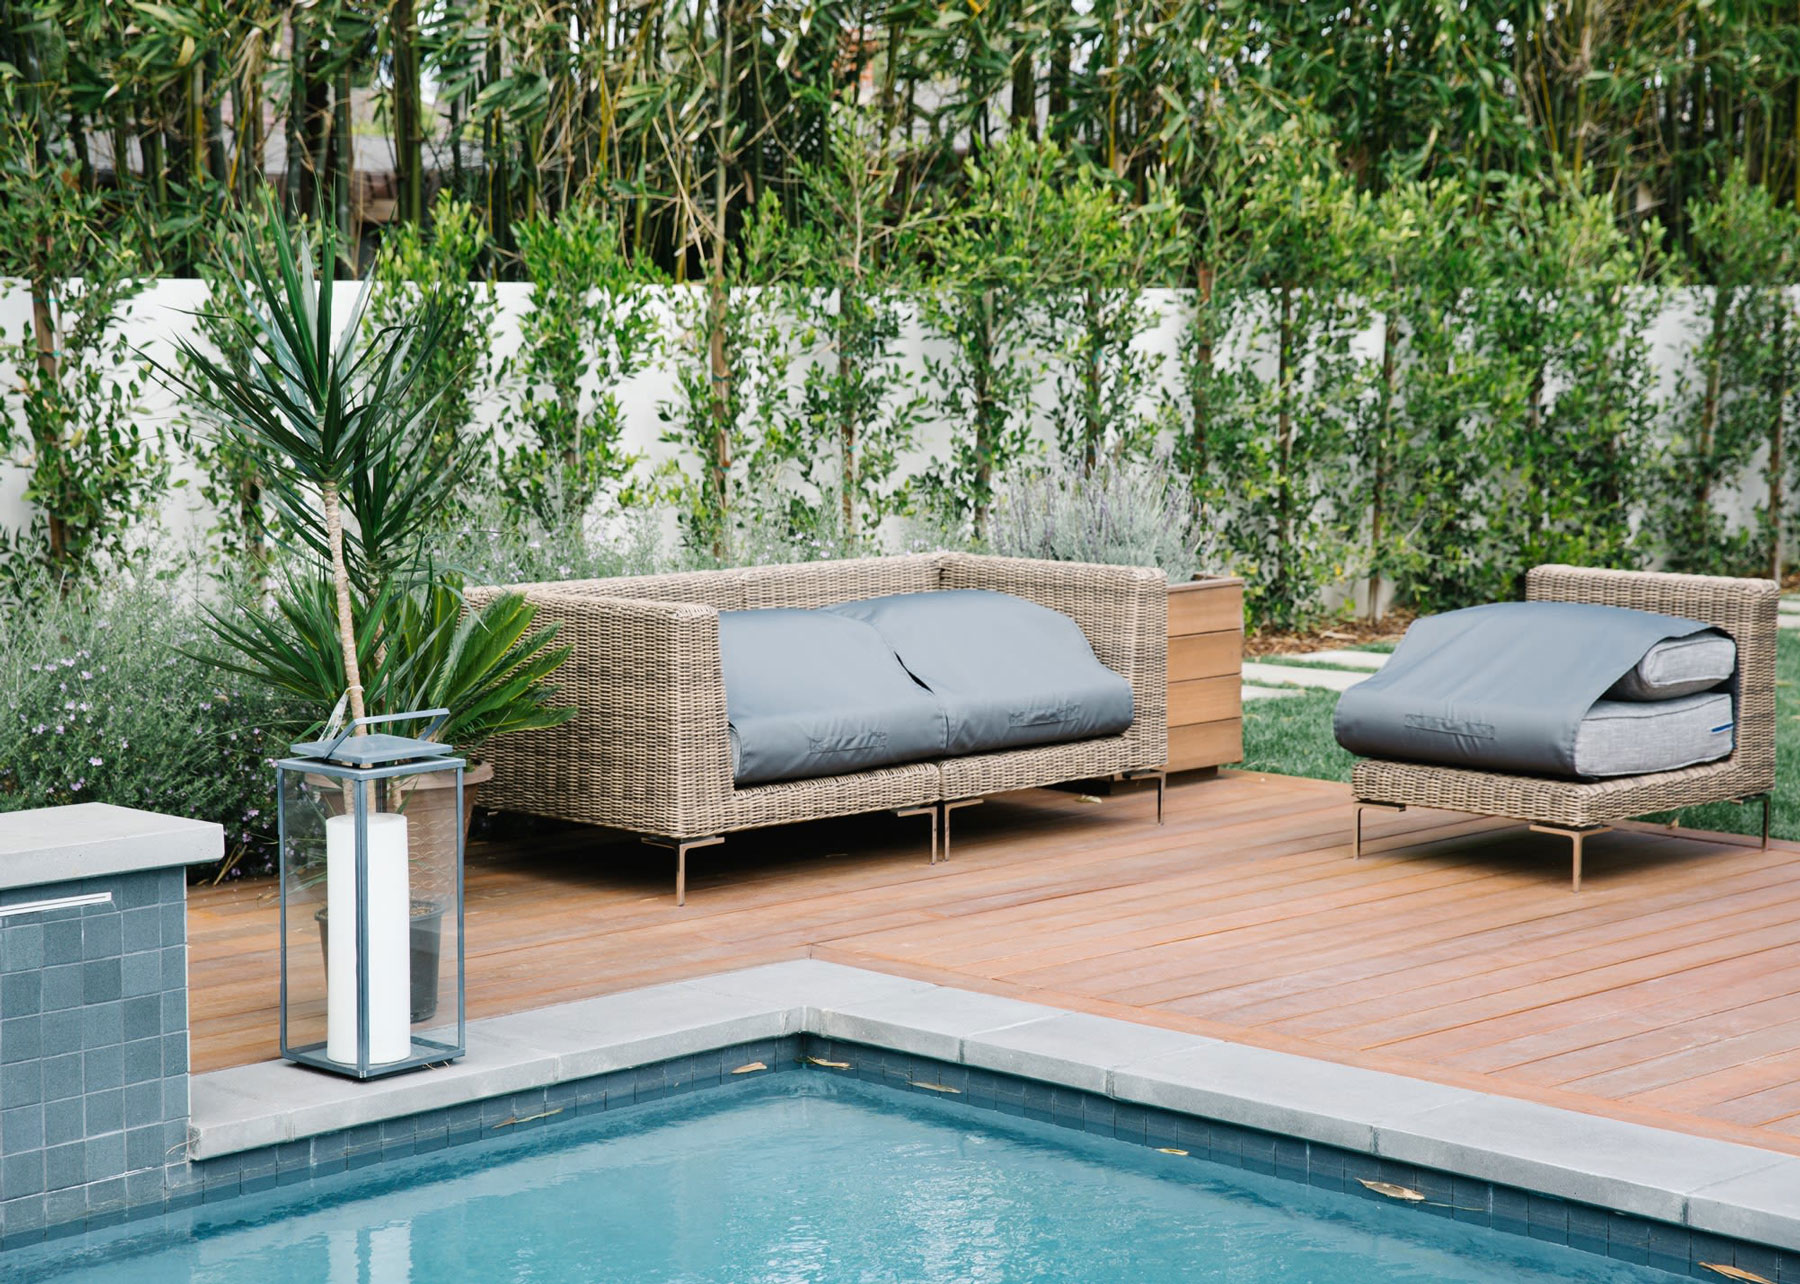 6 Clever Items 7/31/20 - Outer modular outdoor furniture